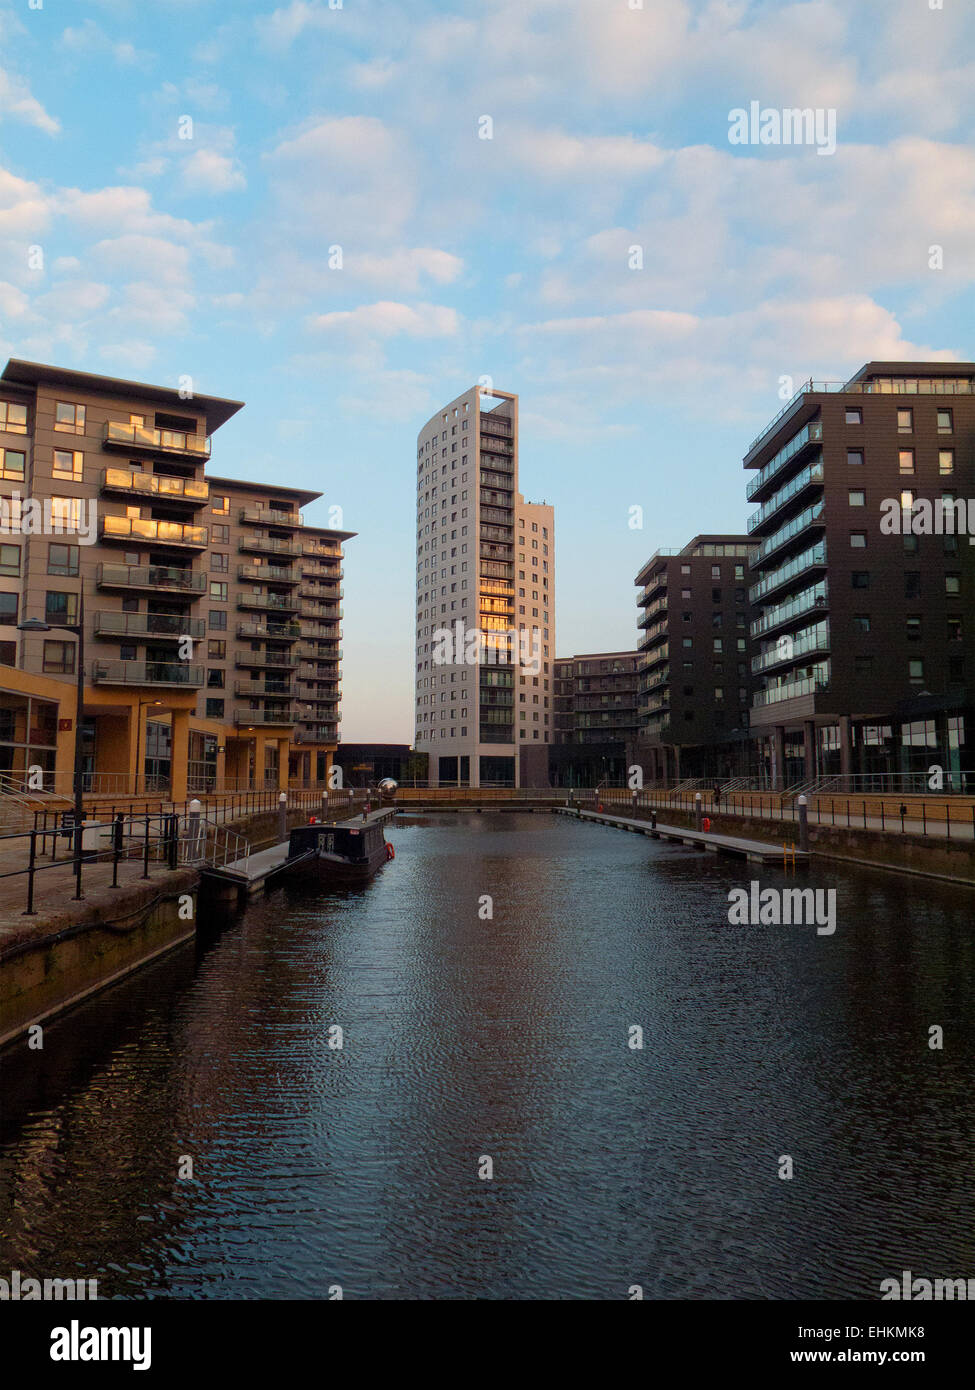 Clarence Dock, a modern shopping and leisure destination in central Leeds - Stock Image